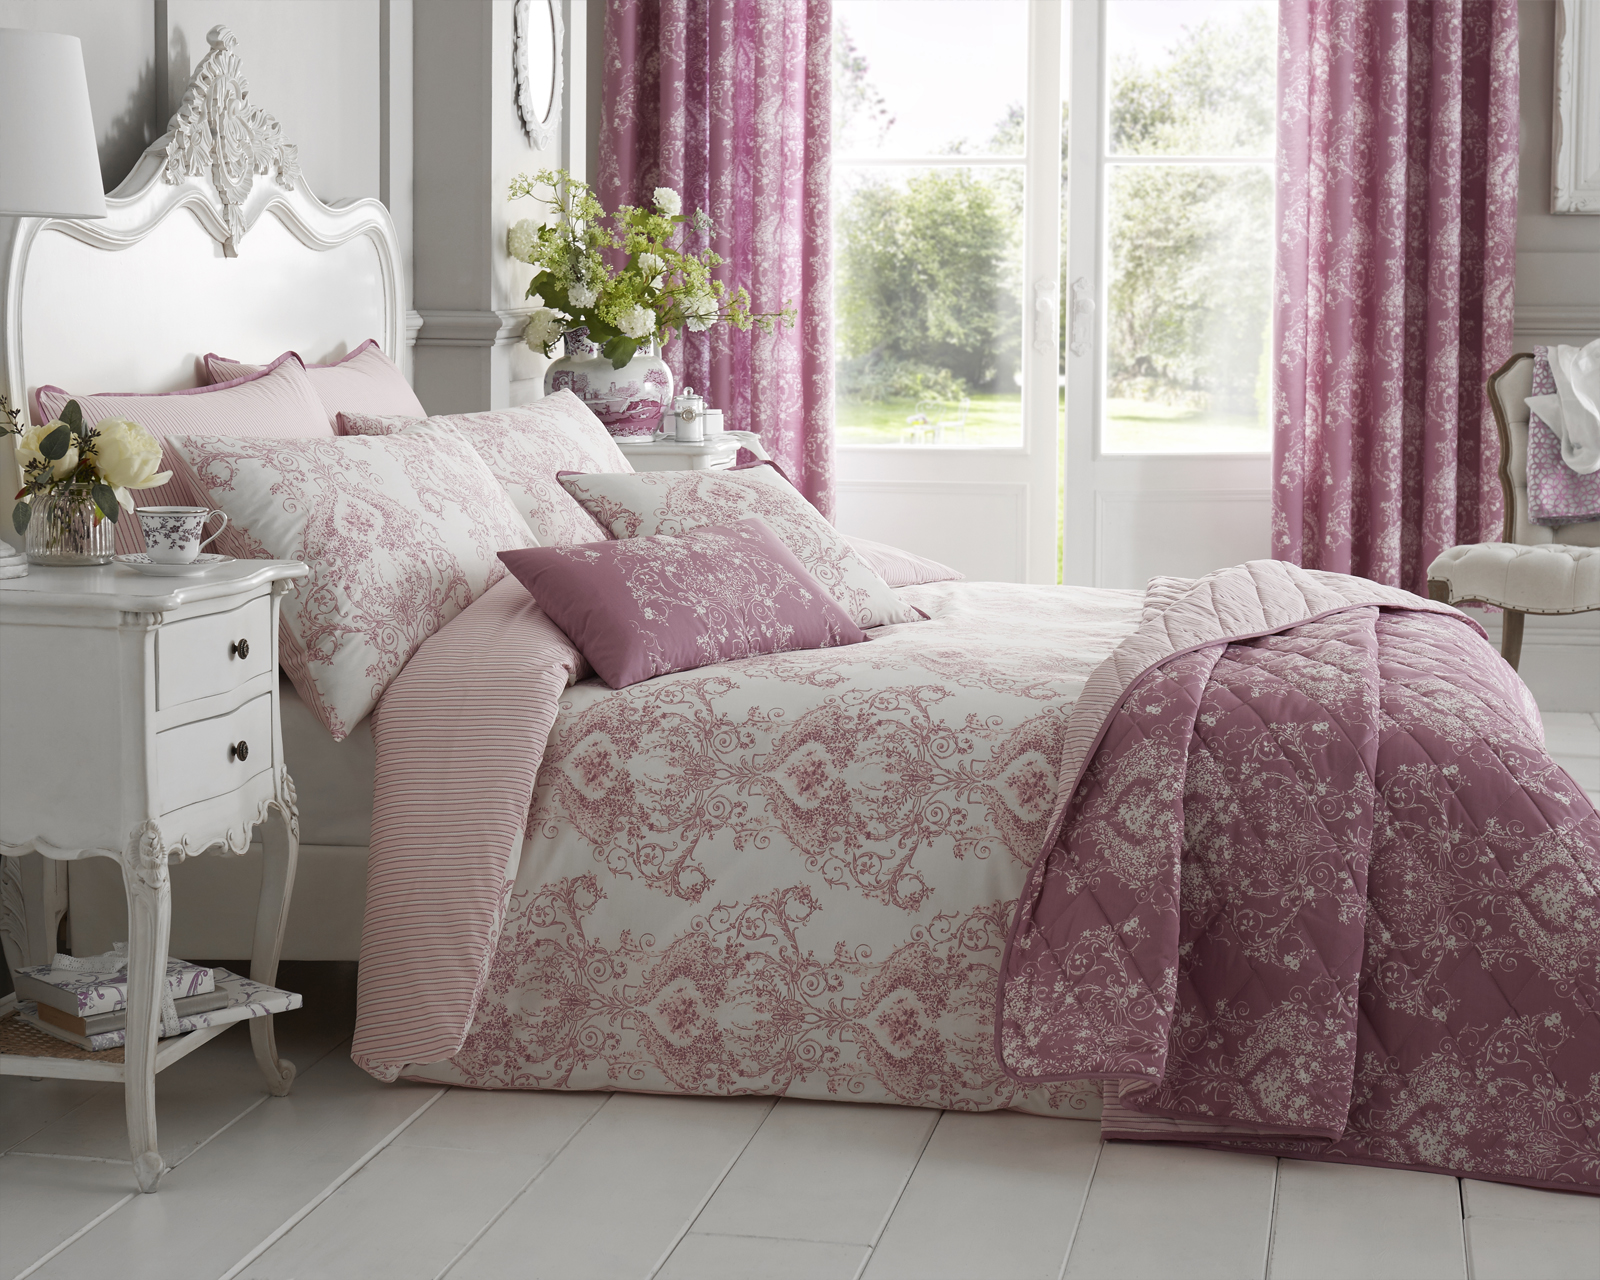 Toile Duvet Set With Pillowcase S In Pink Elegant Floral